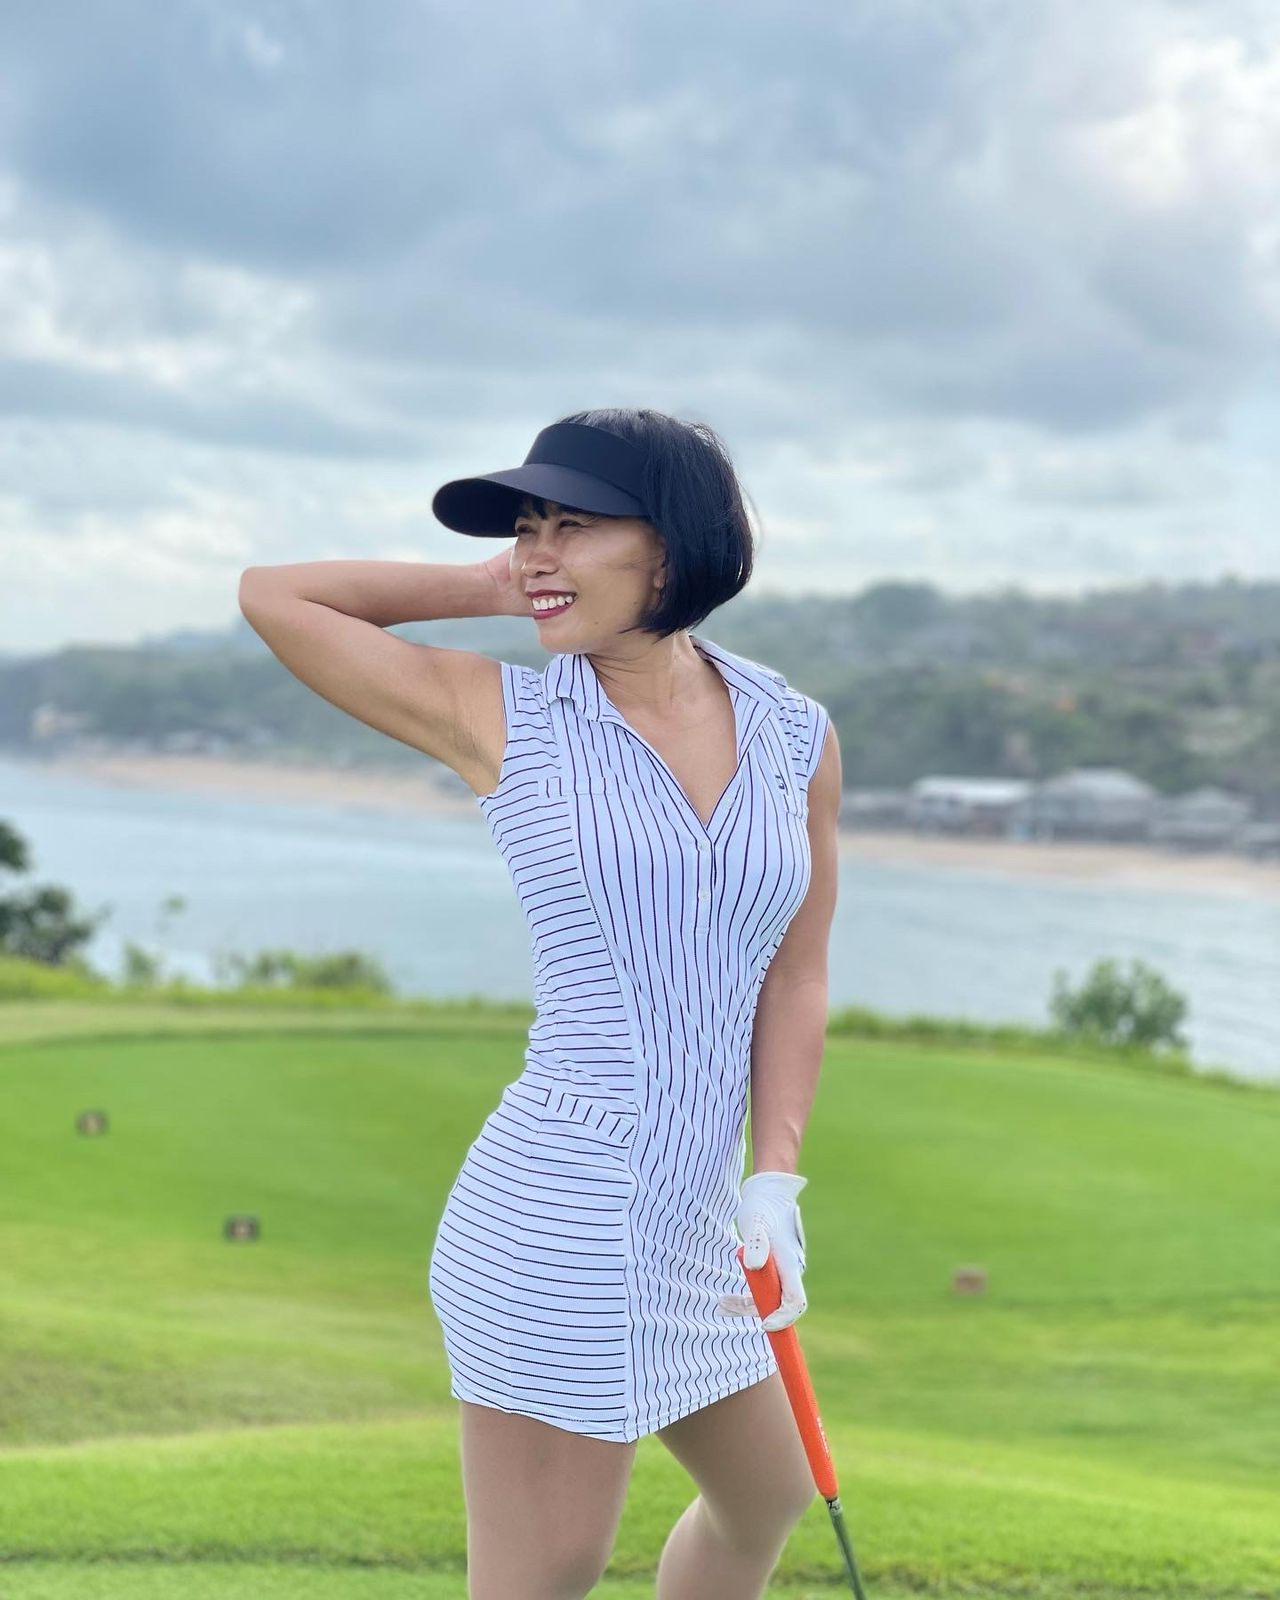 GD-014    Golf Dress Ultra Short Sleeve White With Navy Pinstripes Vertical Front And Back And Horizontal Sides